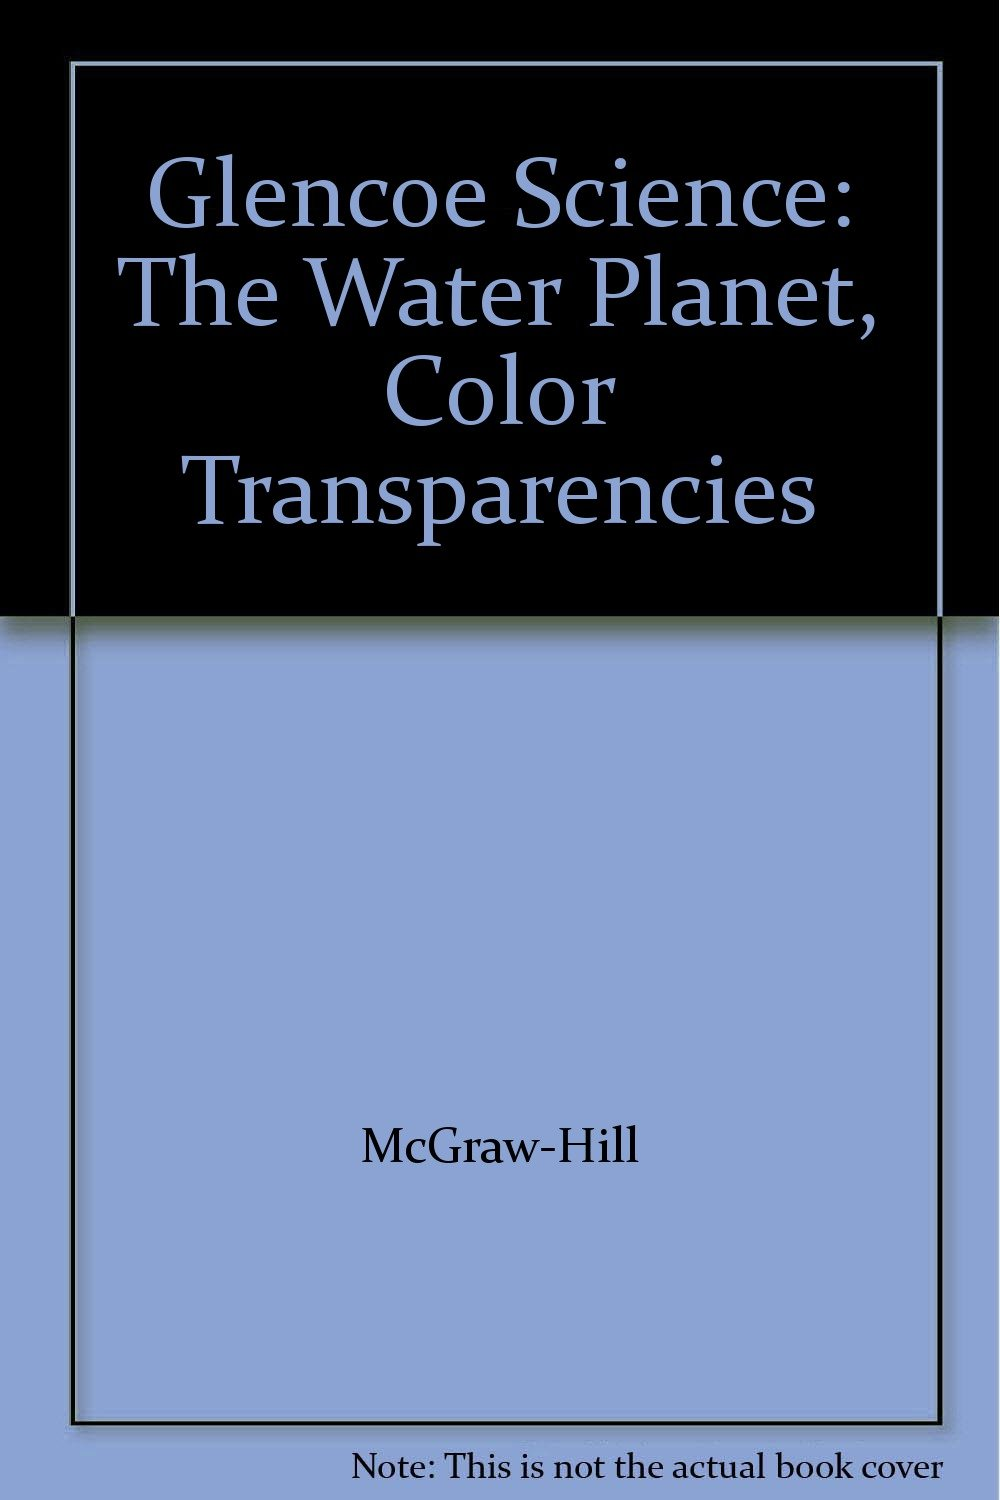 Glencoe Science: The Water Planet, Color Transparencies pdf